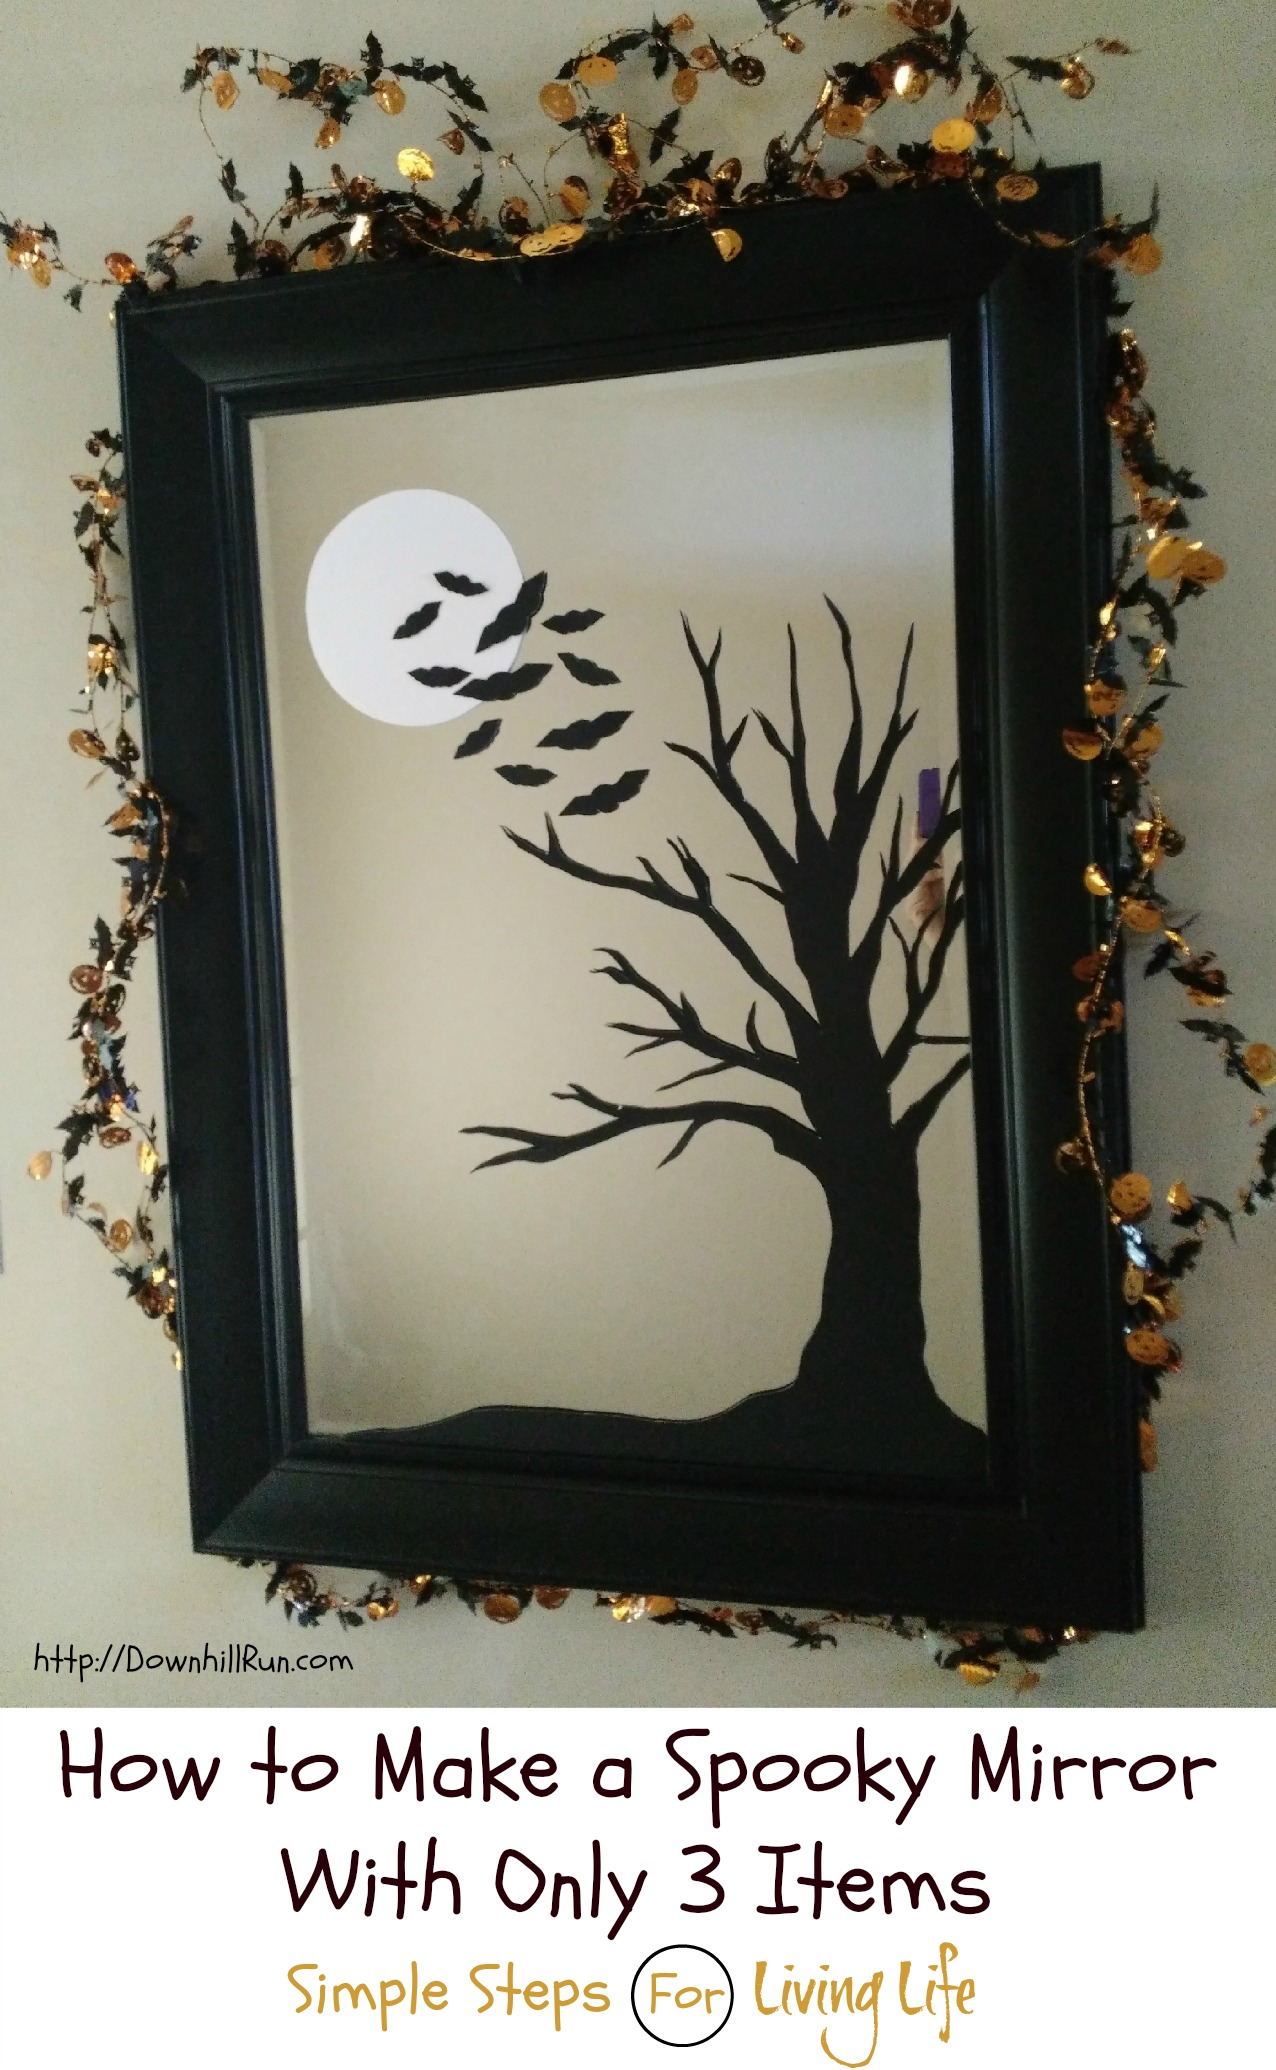 How To Make A Spooky Mirror With Only 3 Items